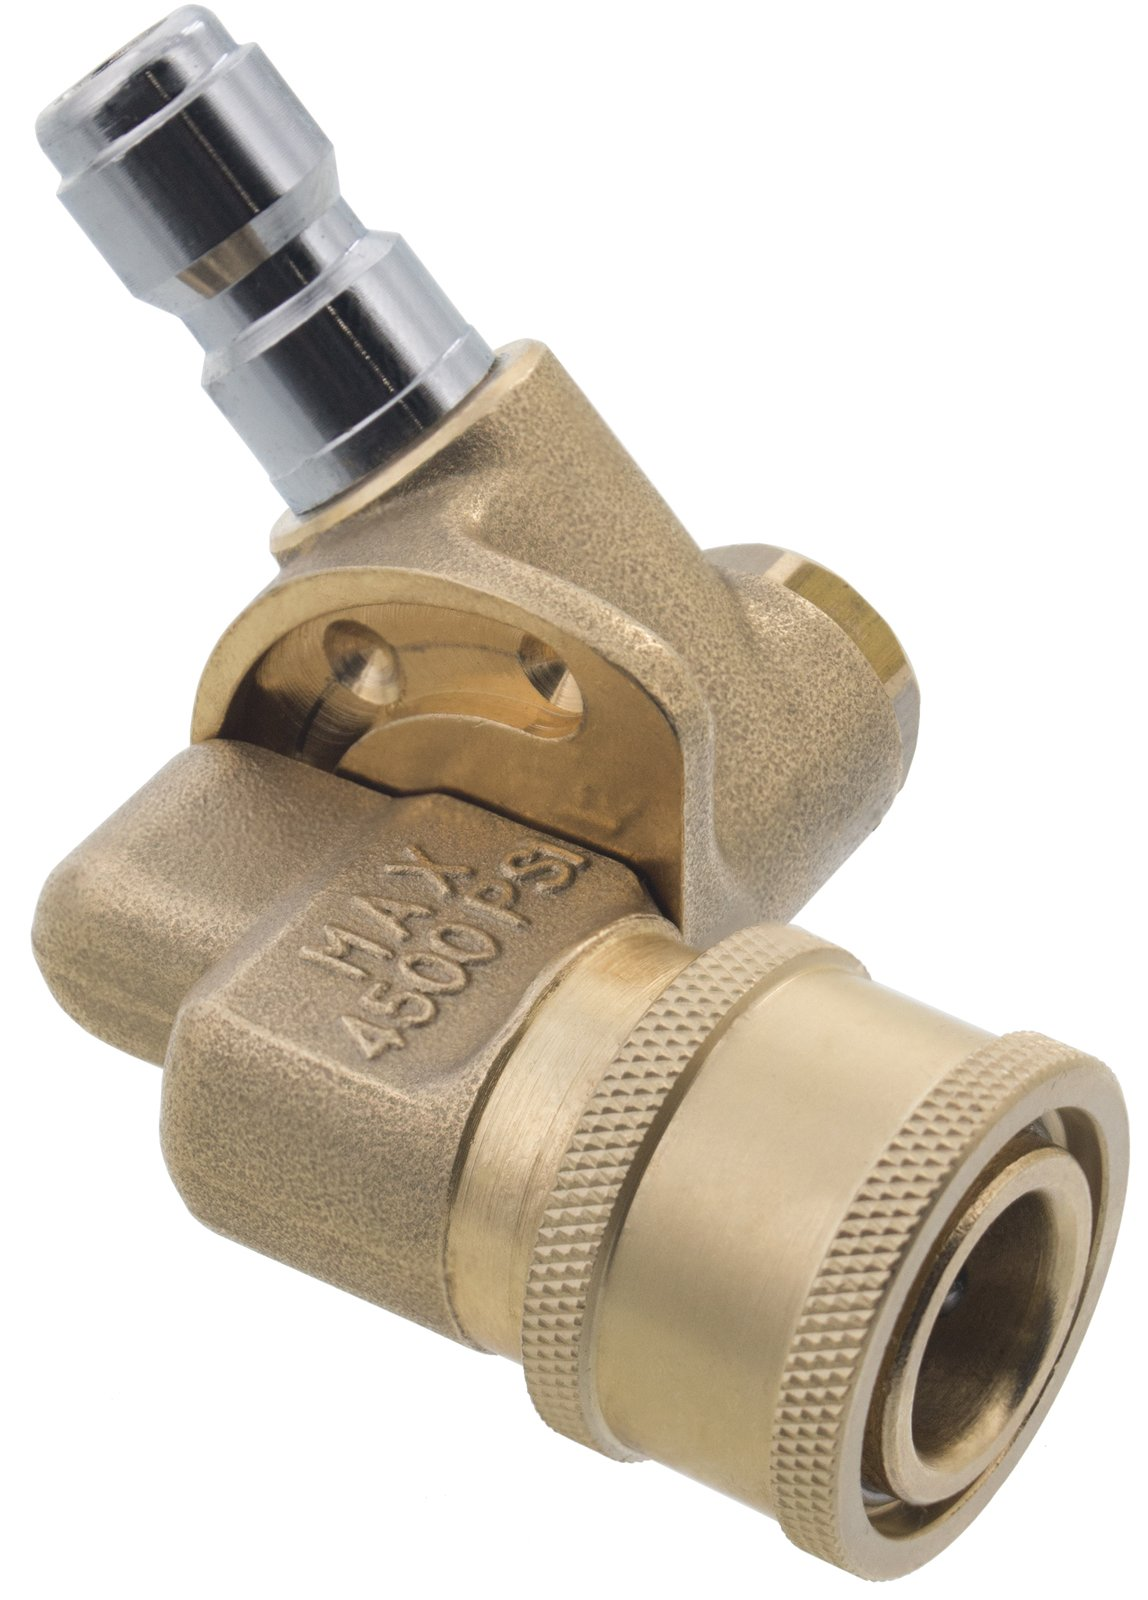 Erie Tools Pressure Washer 1/4'' 120 Degree Pivoting Quick Connect Brass Coupler 4500 PSI by Erie Tools